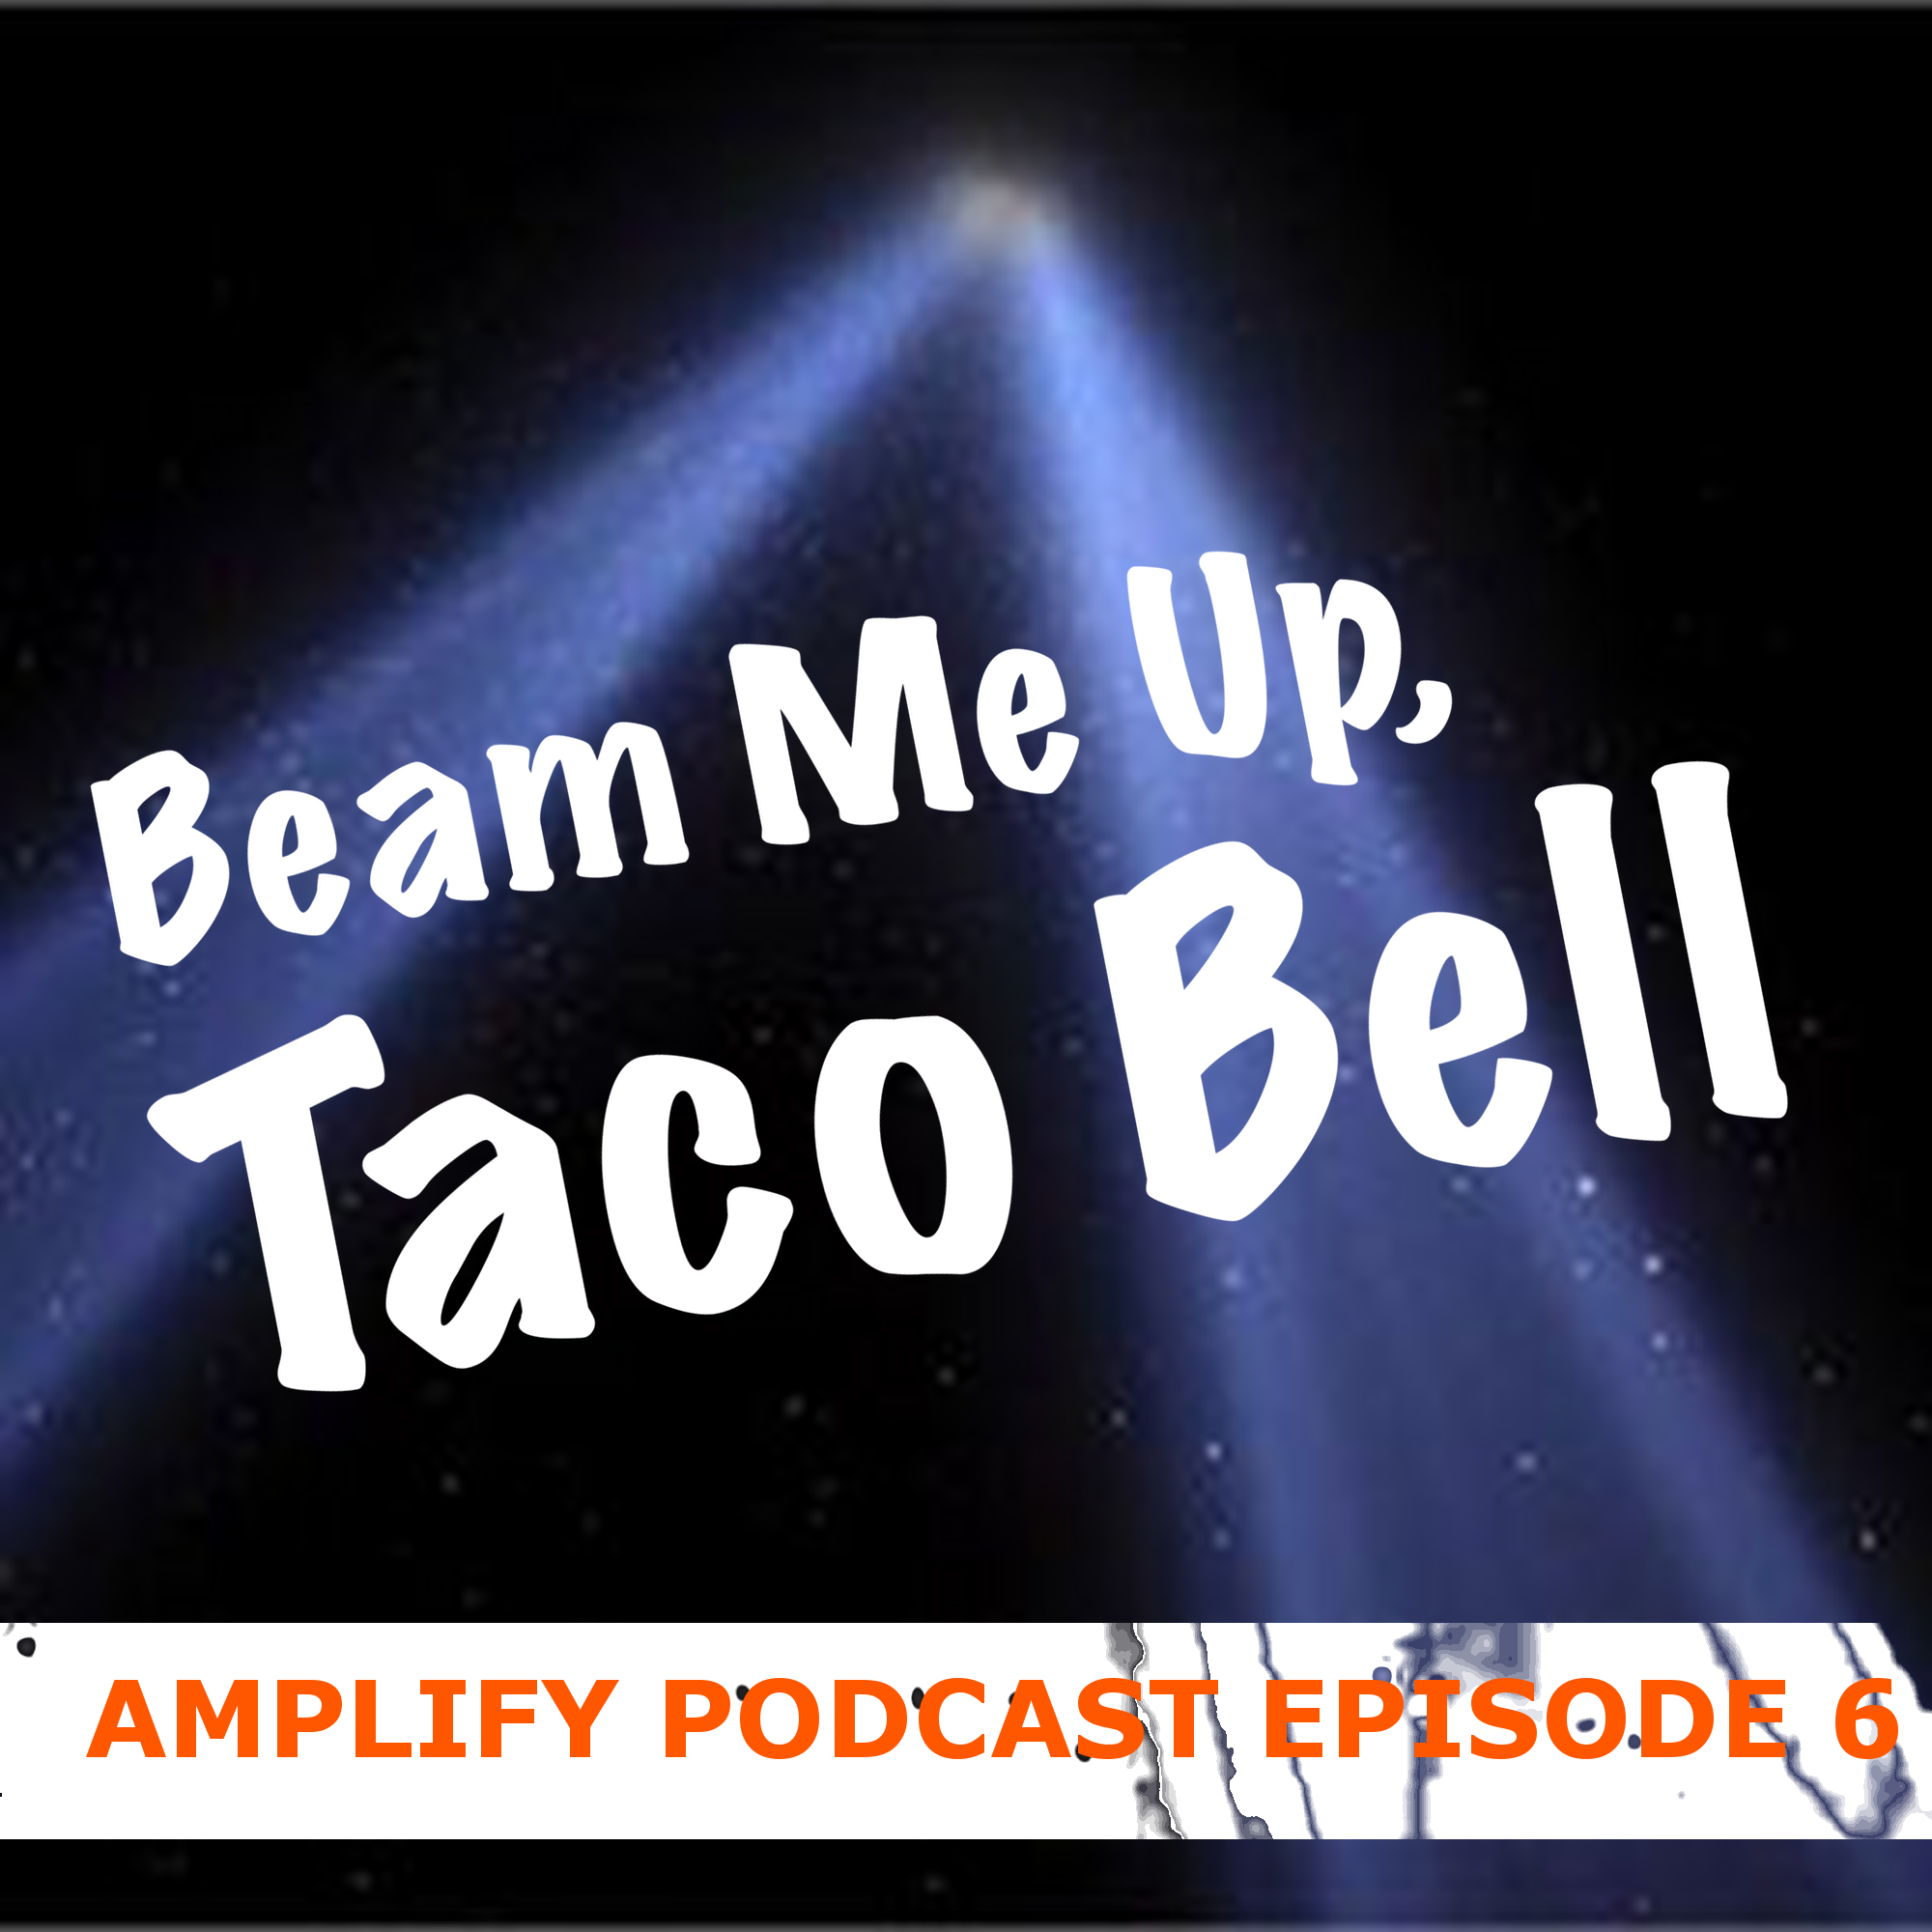 Beam me up, Taco Bell